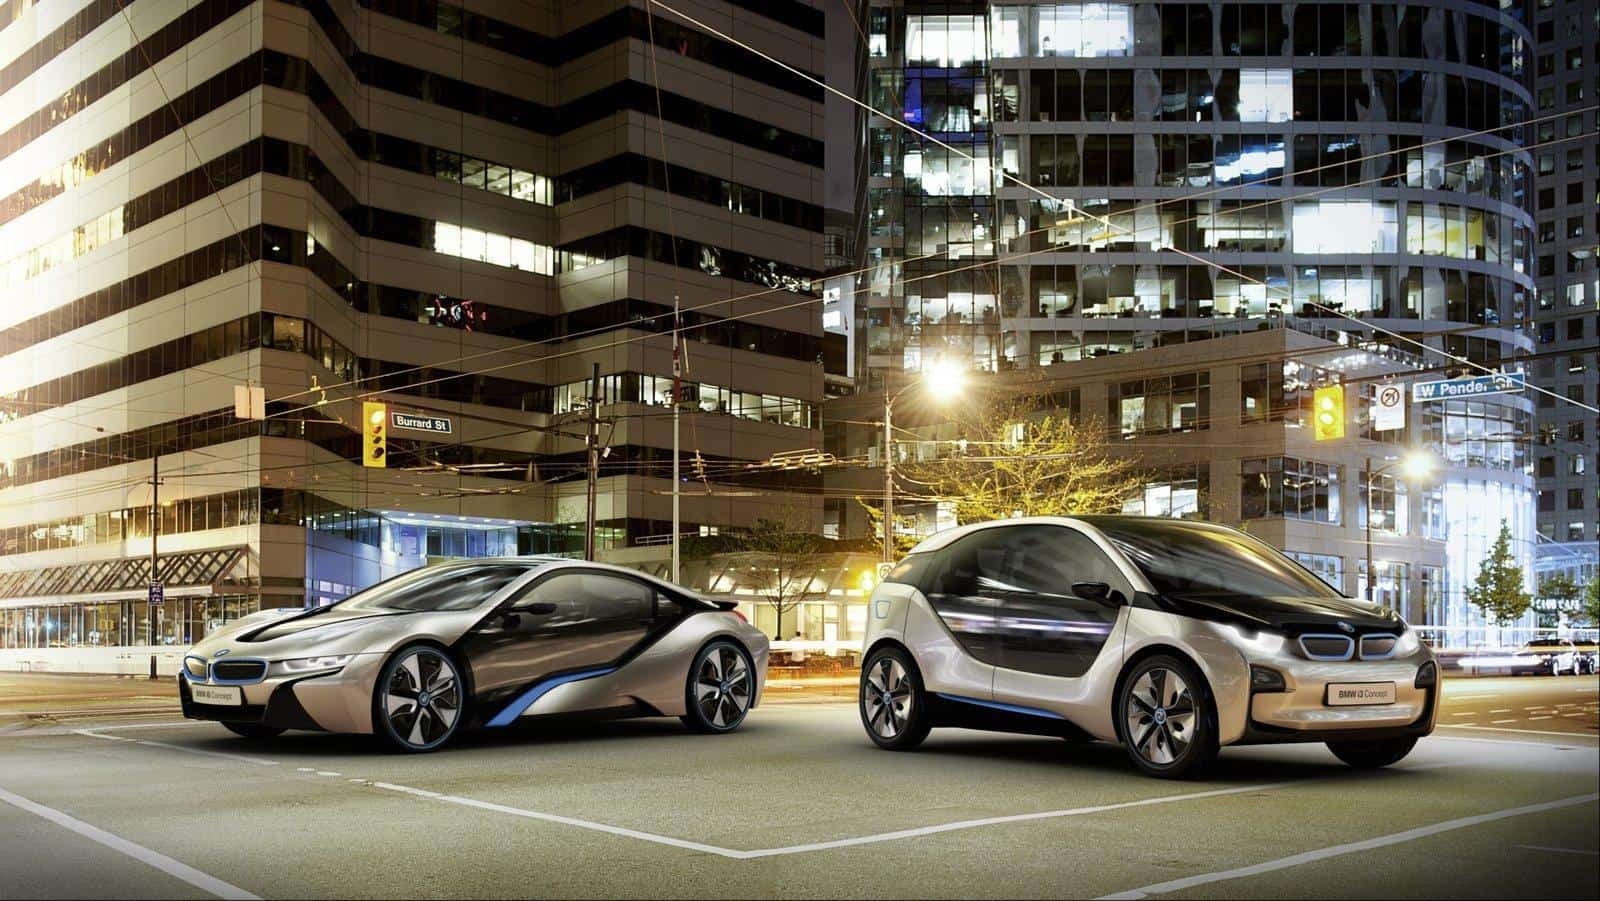 Bon BMW Has Officially Introduced Last Week The First Two Vehicles From Their  New Green Brand, I BMW, The BMW I8 And I3 Concepts That Will Be Launched On  The ...